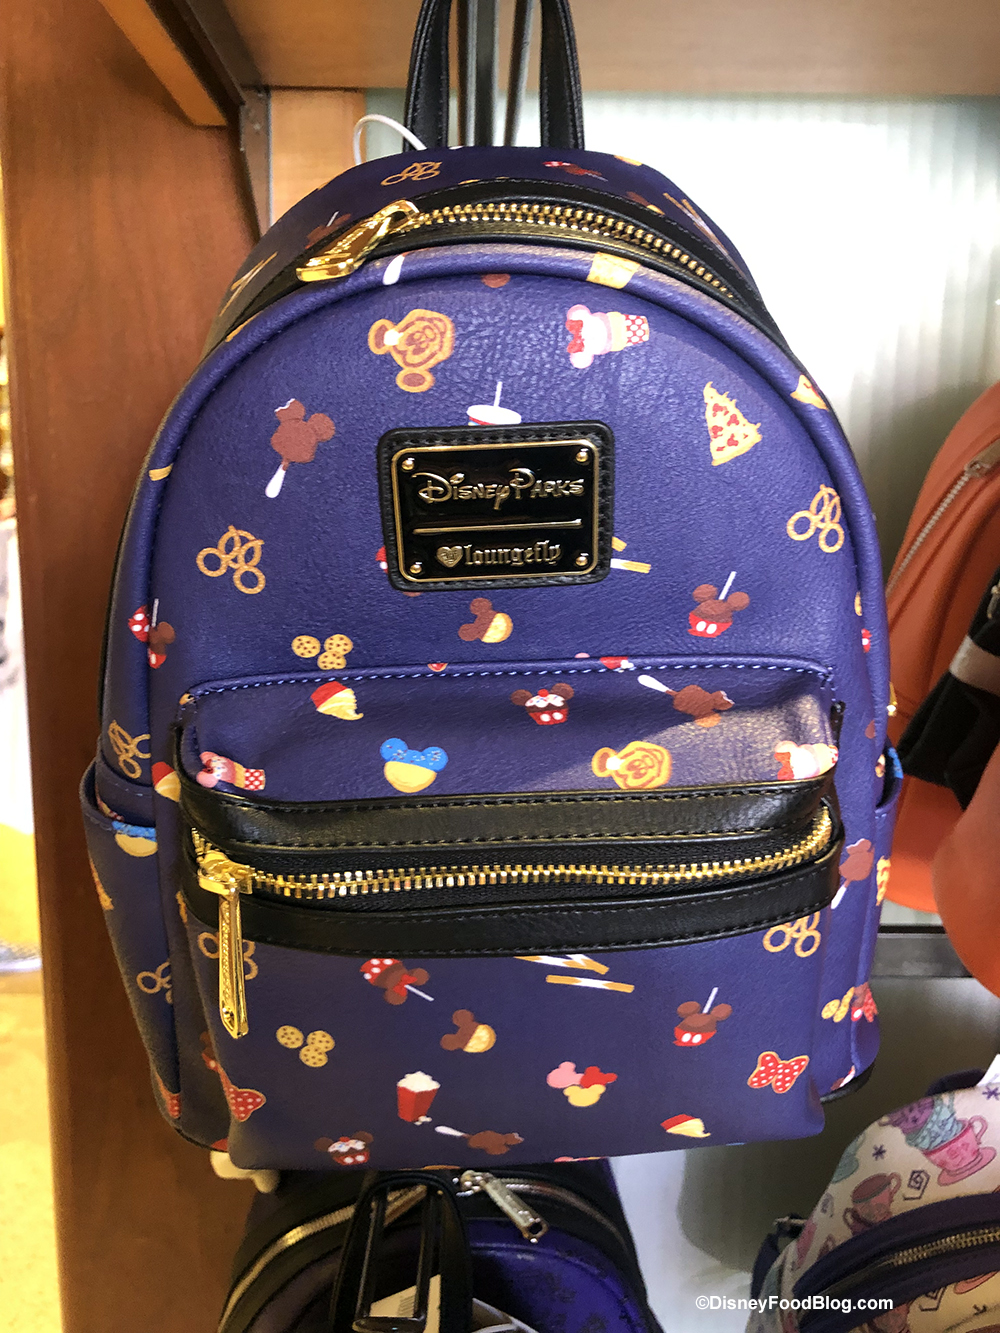 3fab477a957 FINALLY! Loungefly Line of Disney Snacks Bags and Wallets!!